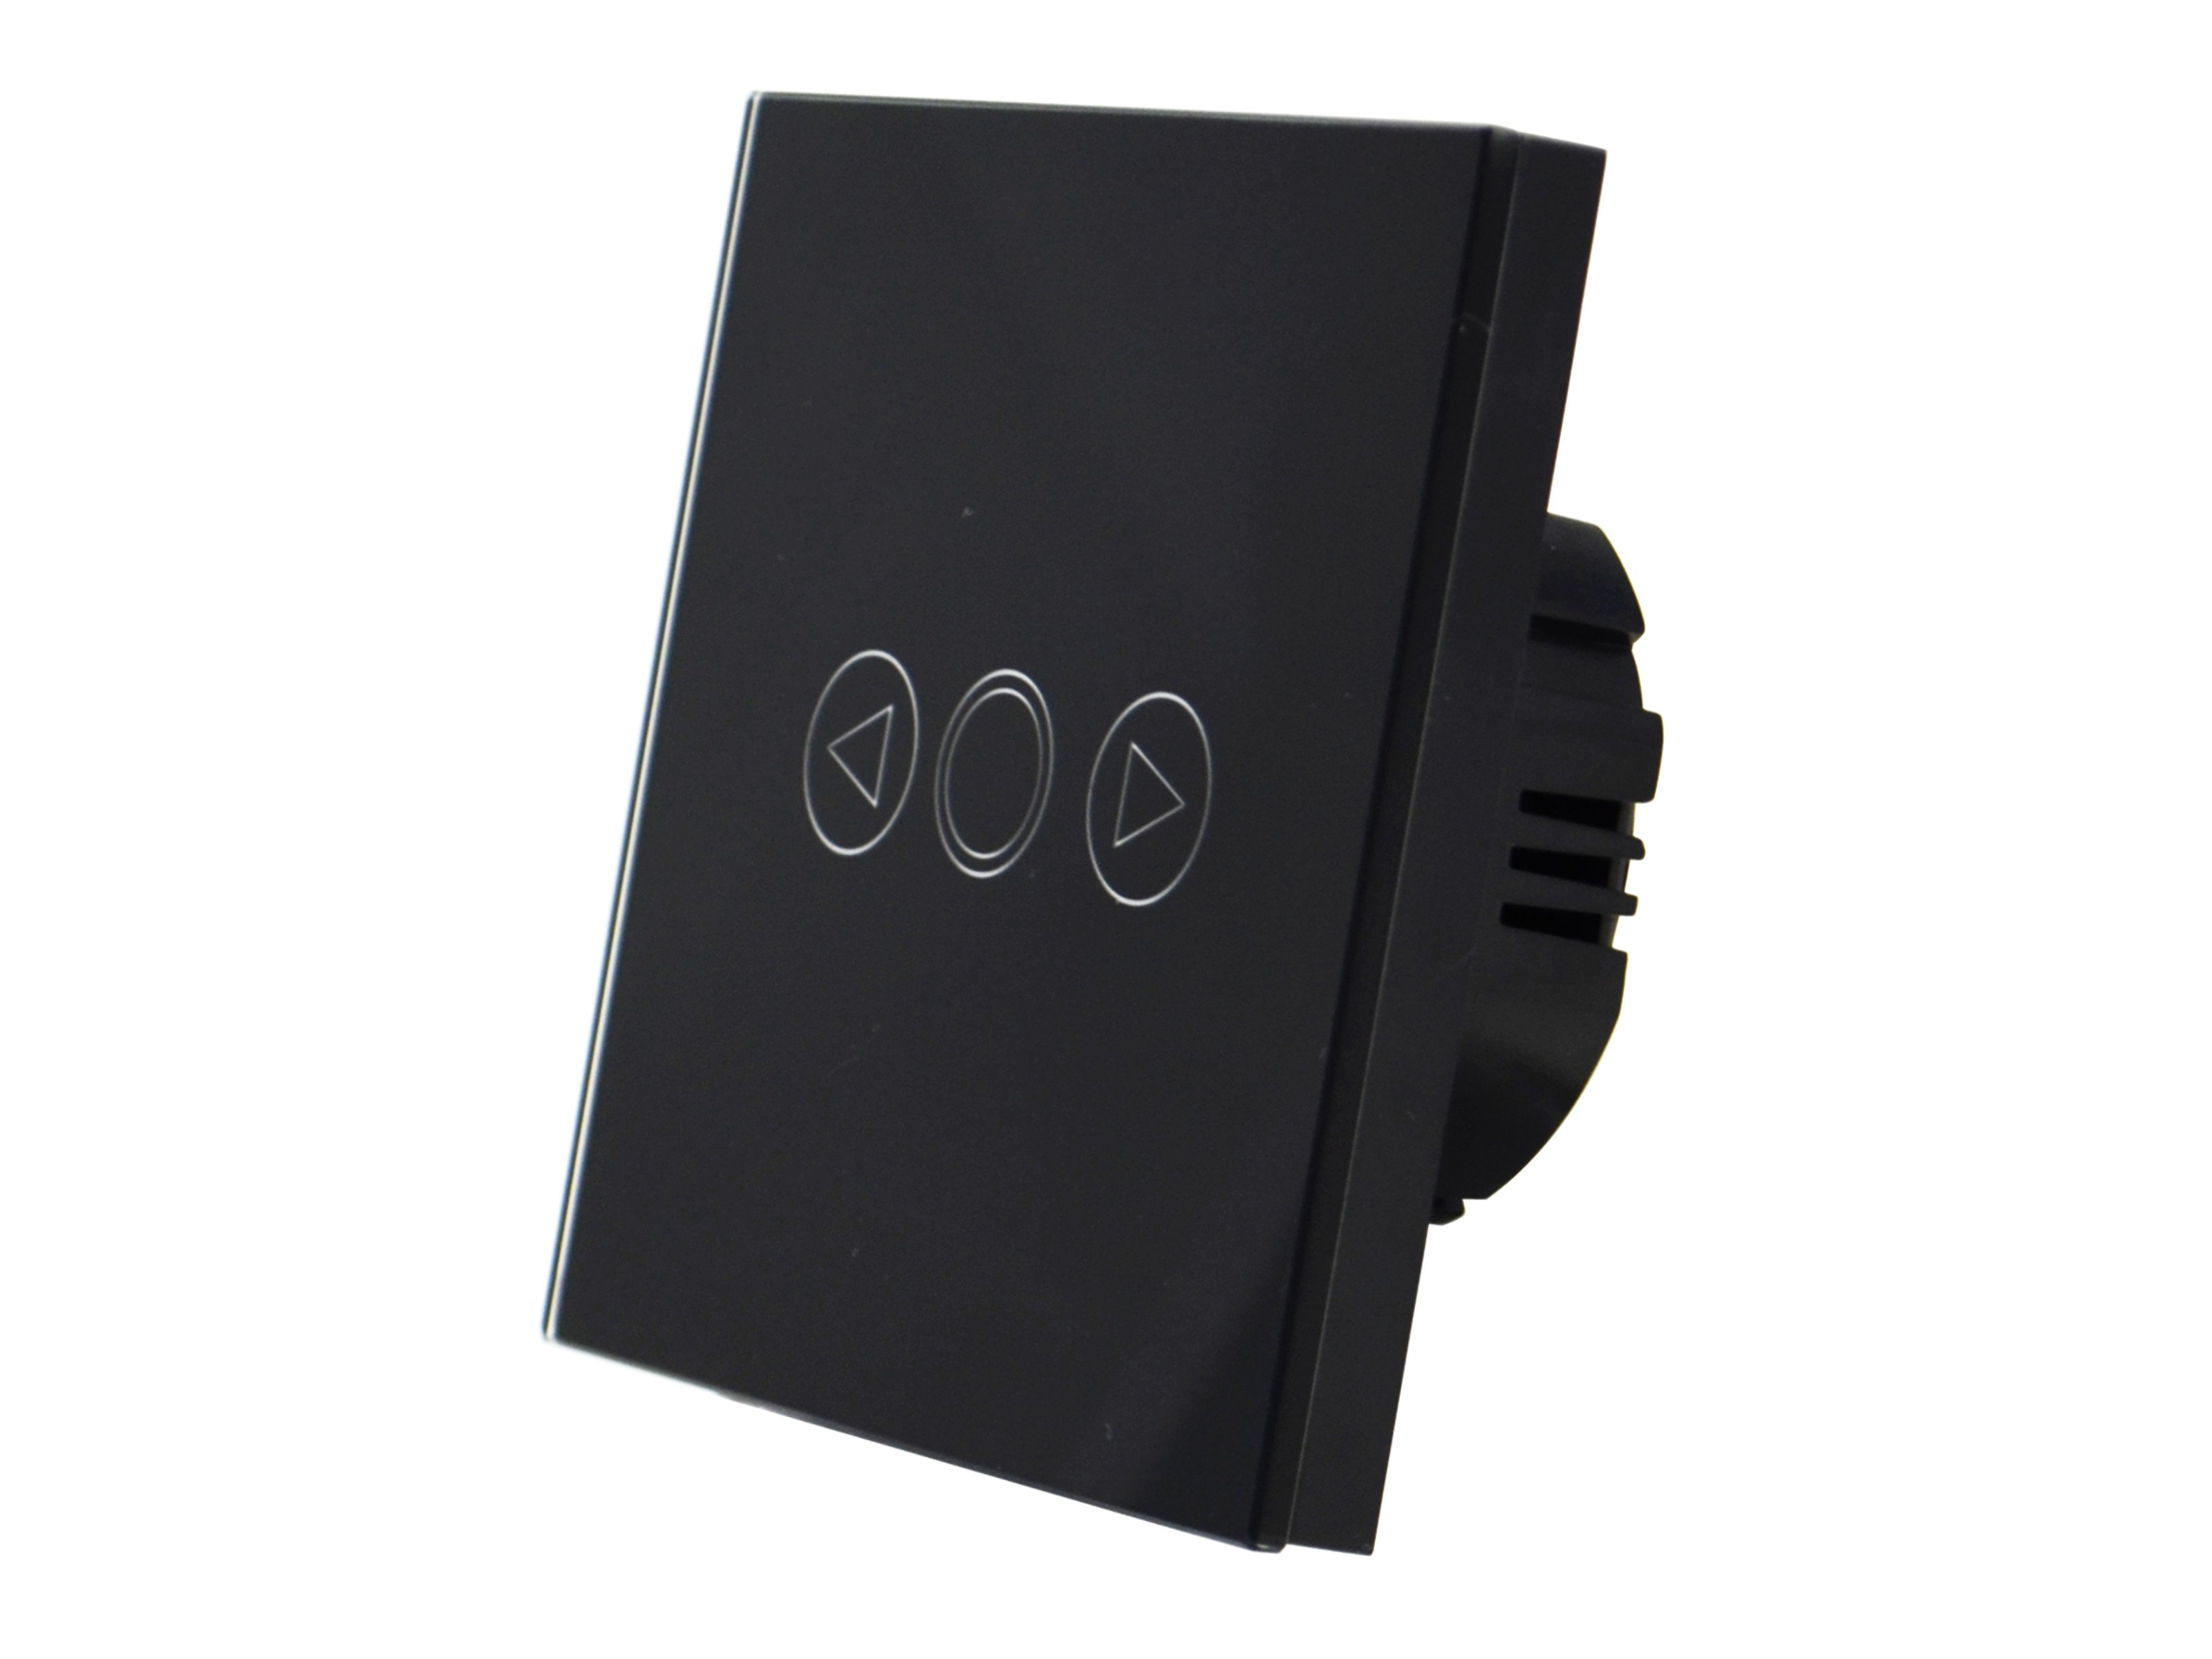 Black dimmer switch